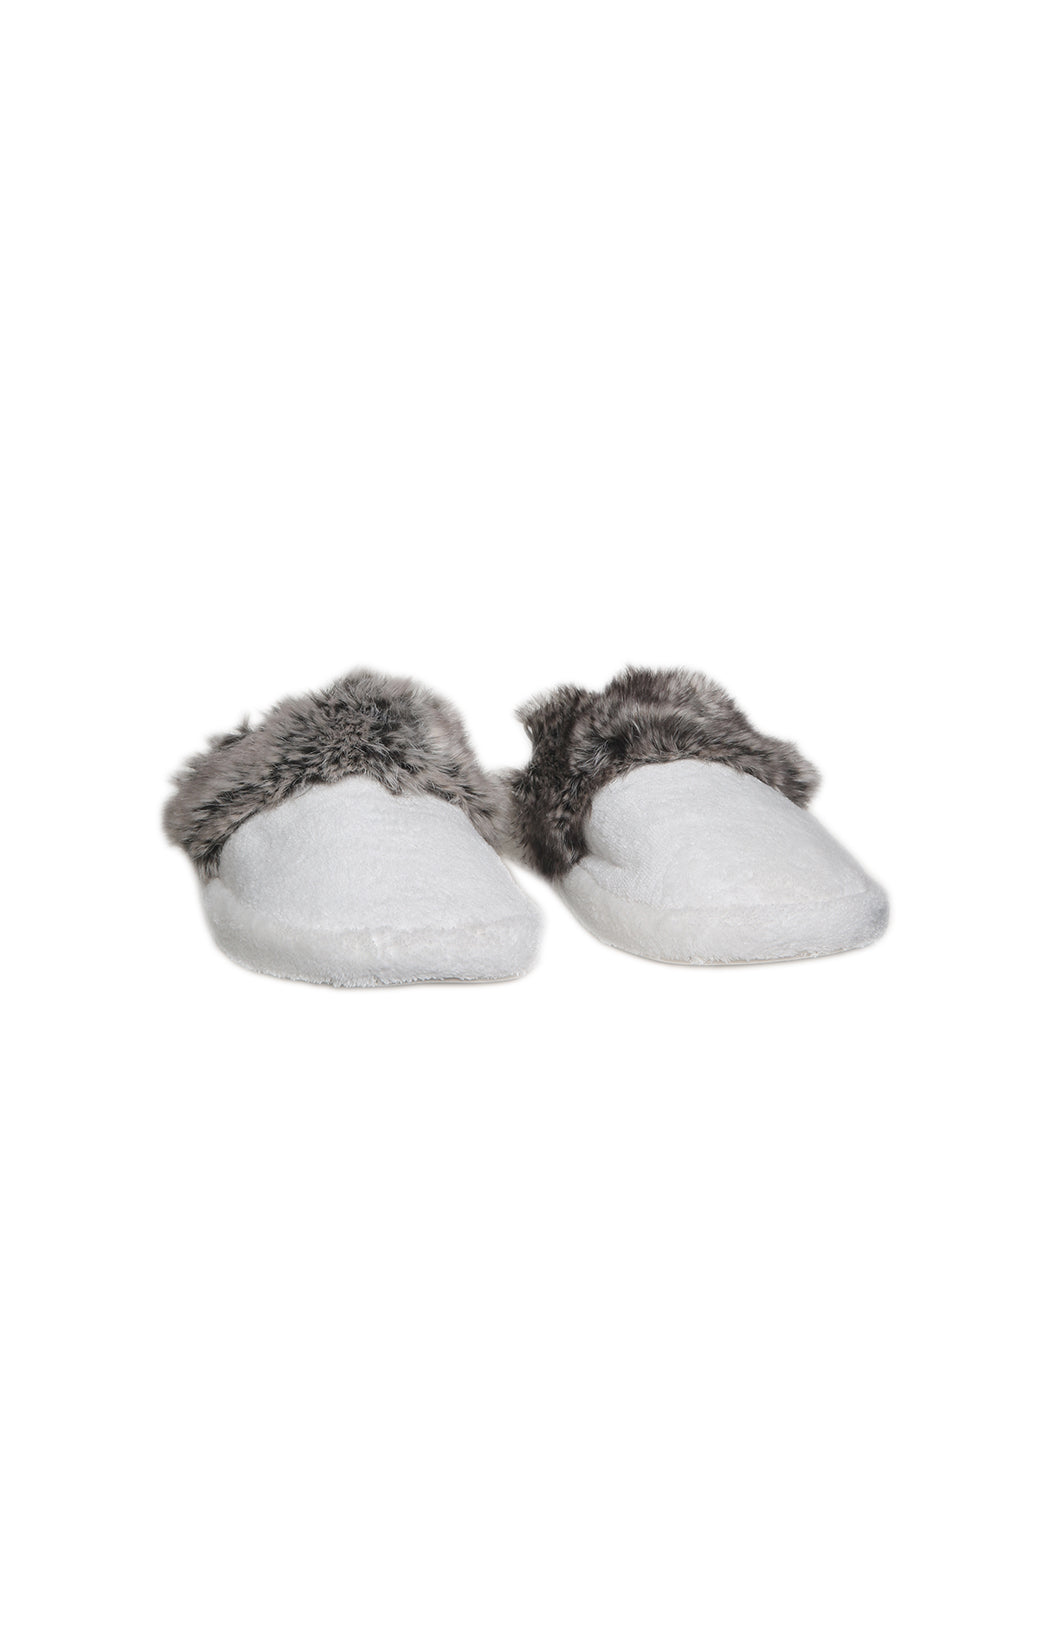 Front view of POTTERY BARN Slippers Size: Medium